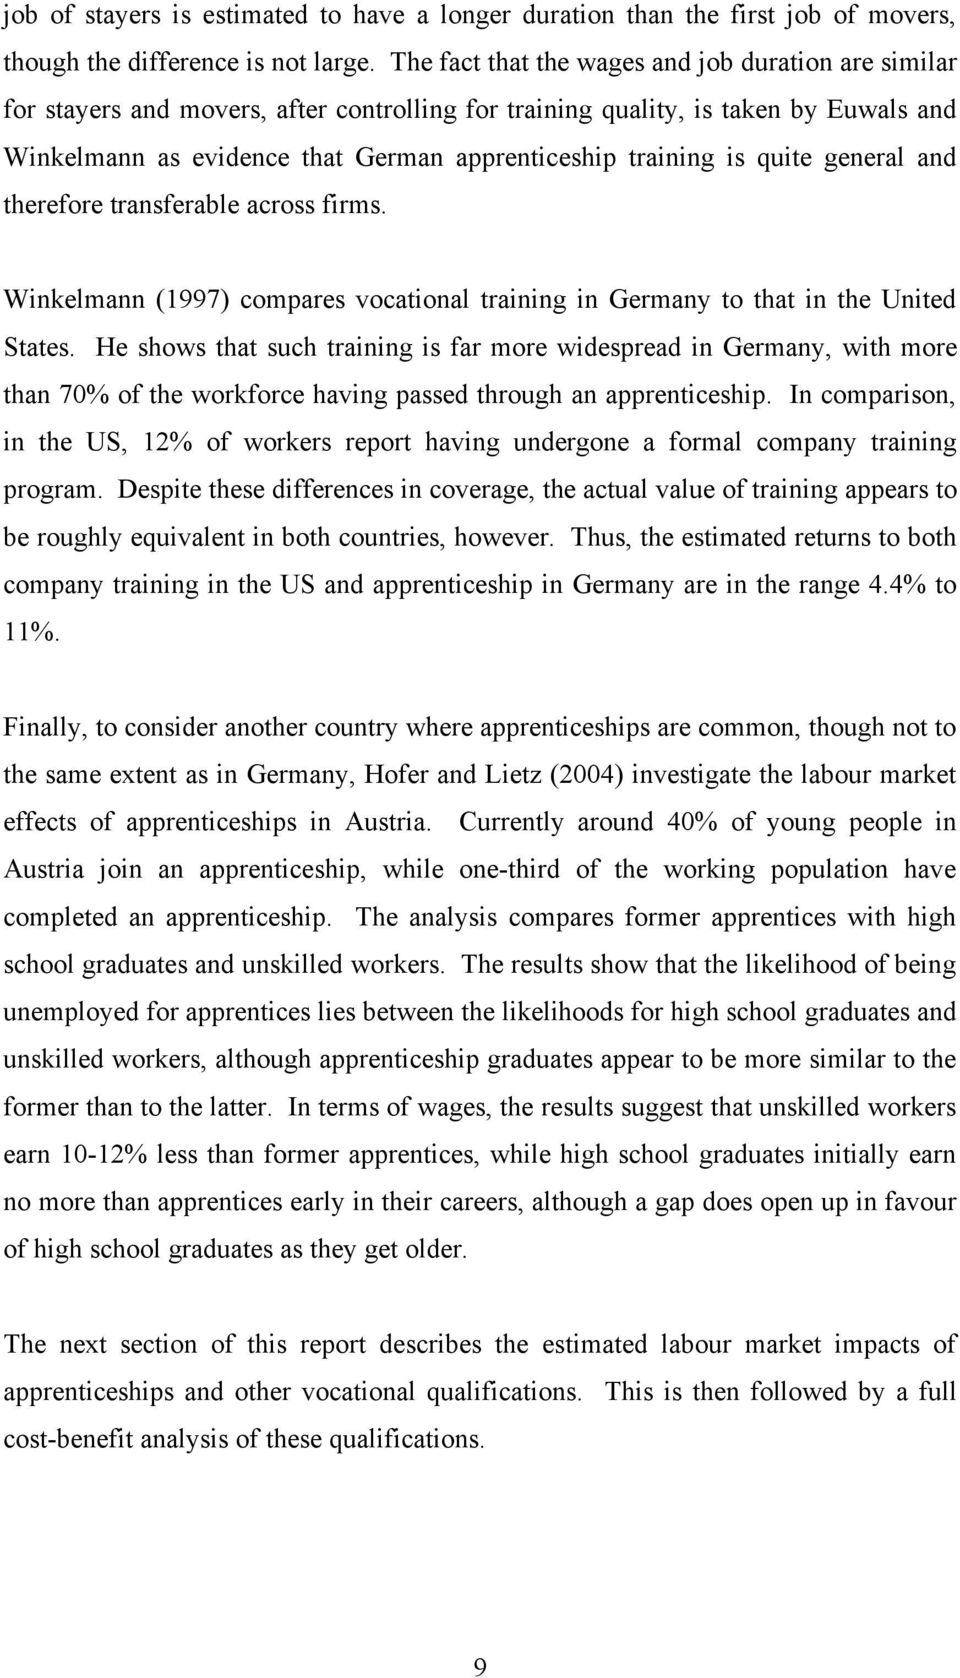 is quite general and therefore transferable across firms. Winkelmann (1997) compares vocational training in Germany to that in the United States.